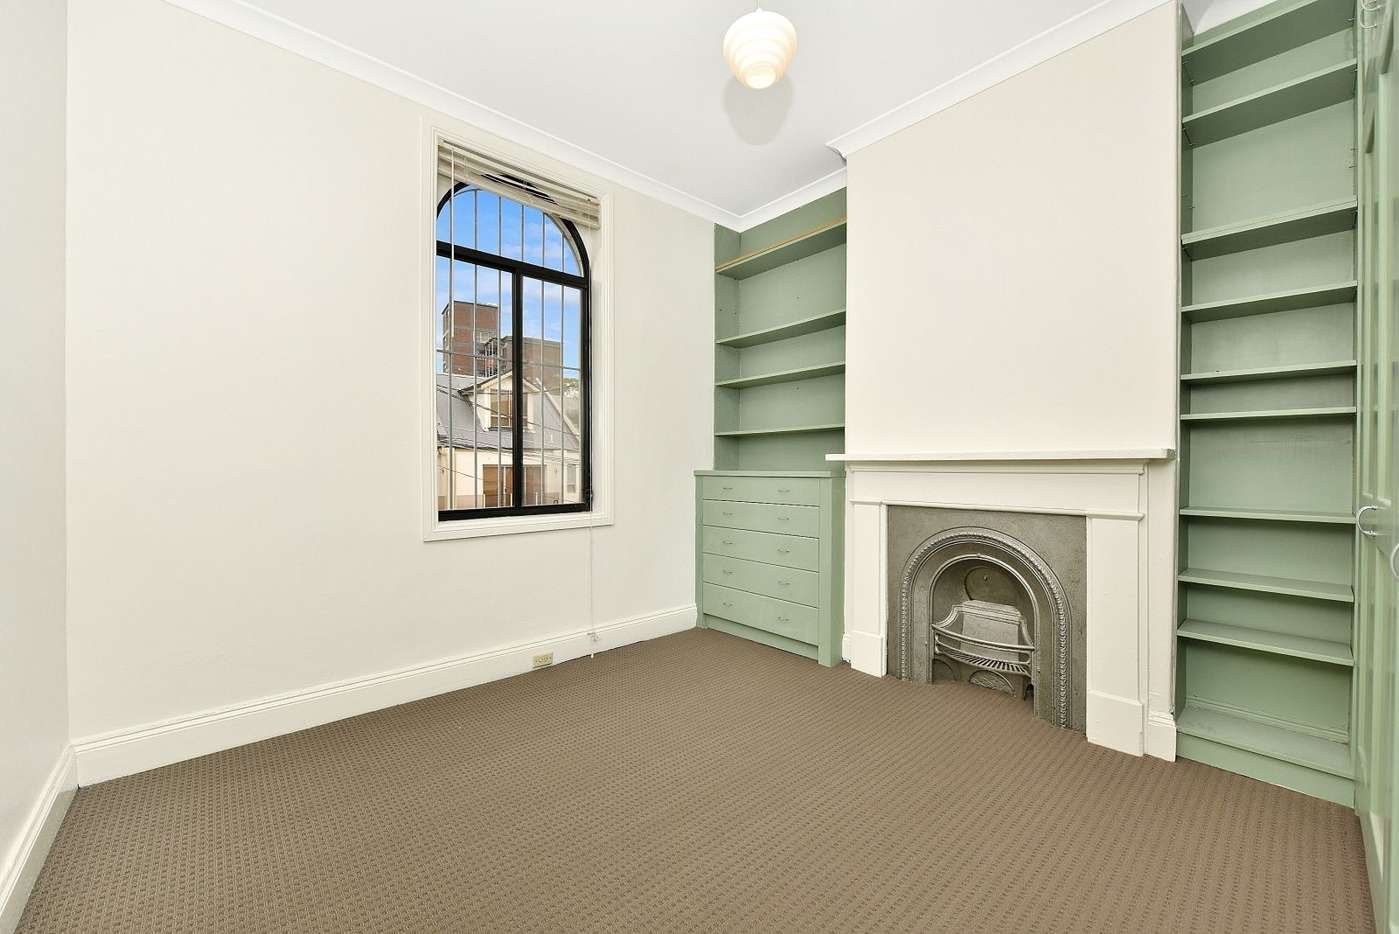 Main view of Homely house listing, 20 Bailey Street, Newtown, NSW 2042